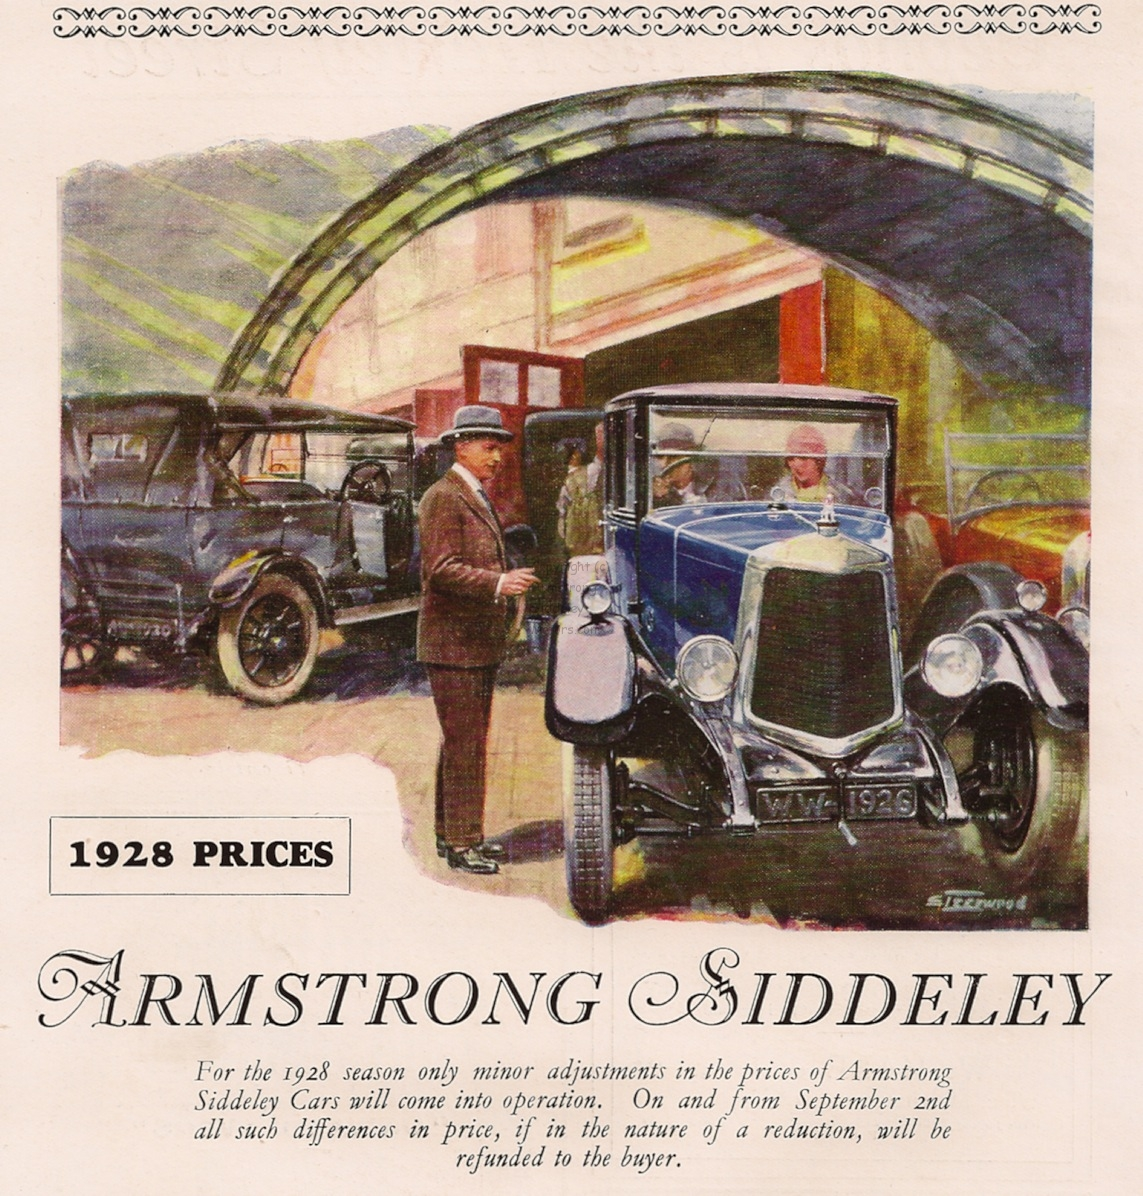 Armstrong siddeley photo - 4